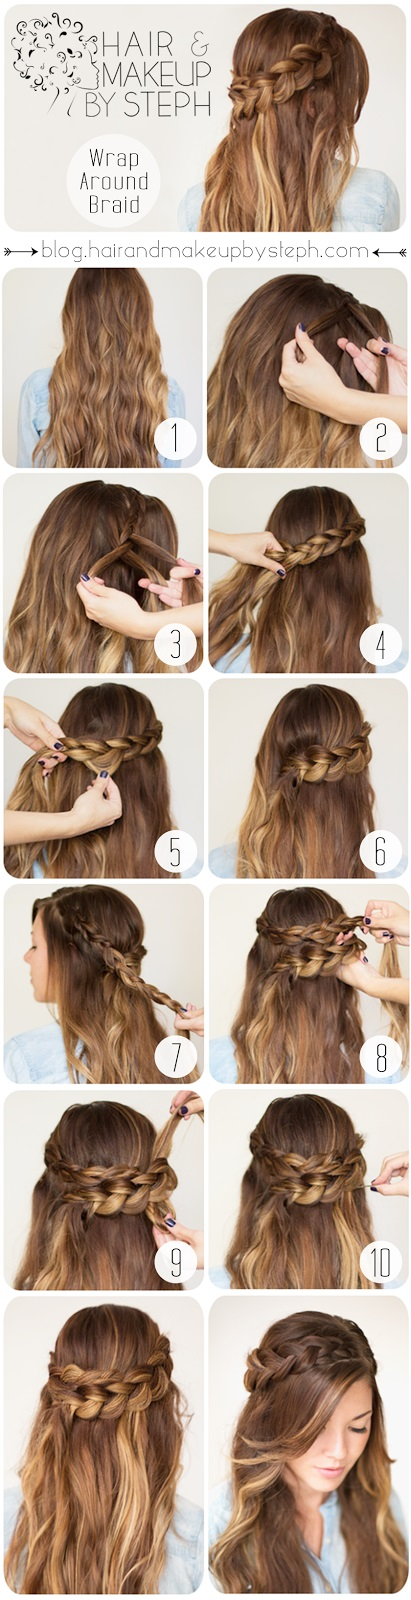 Braid Hair Tutorials: 12 Ways to Braid Your Hair | Hairstyles Weekly